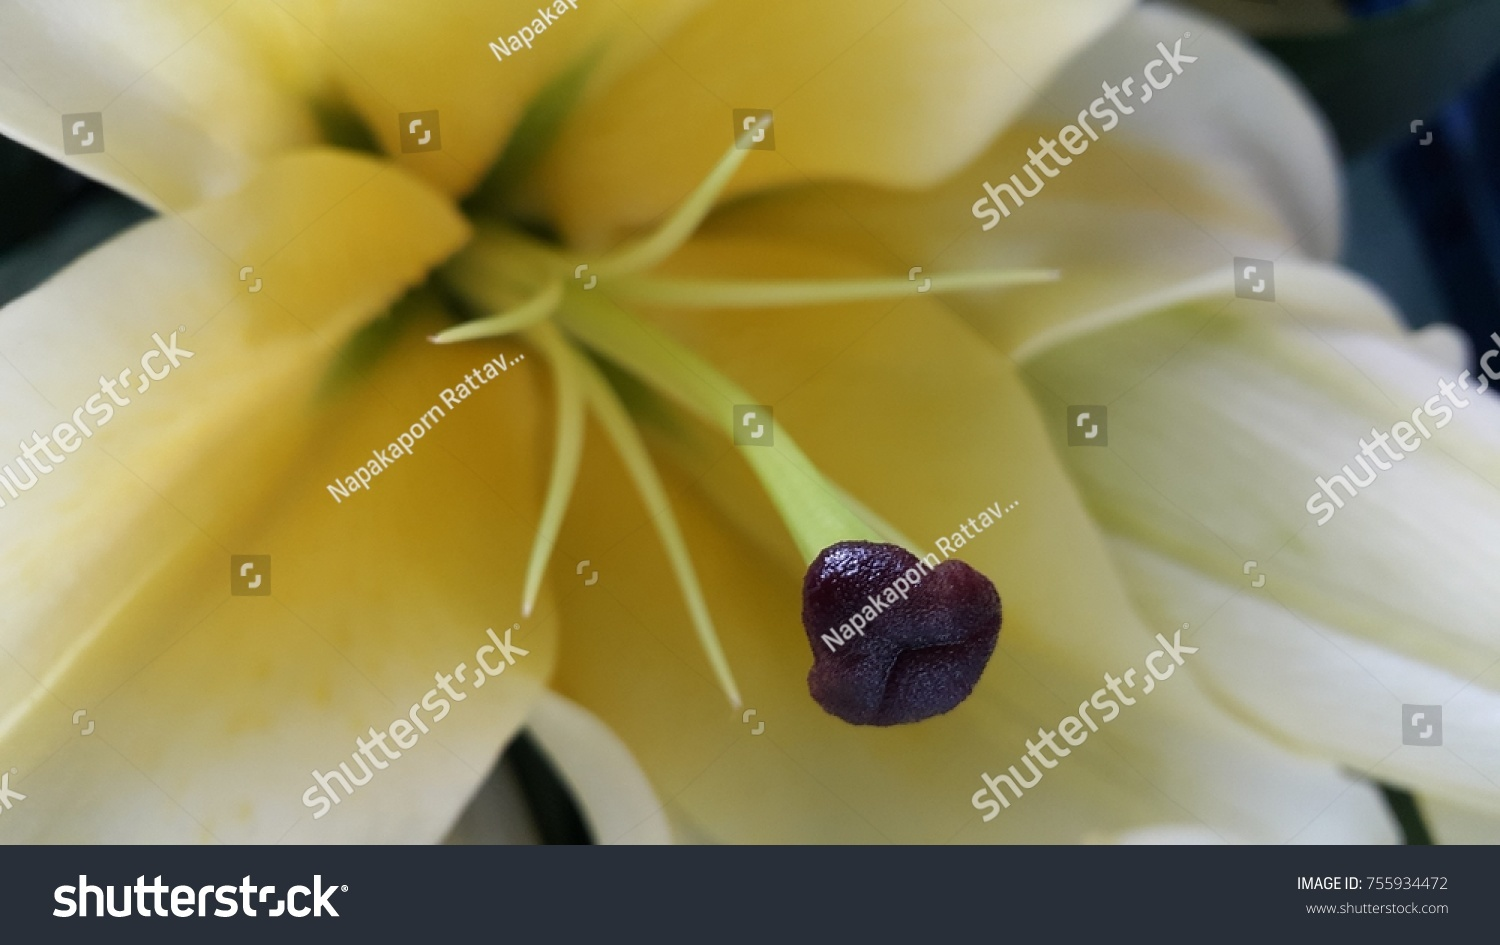 Pollen white lily flower look like stock photo edit now 755934472 the pollen of white lily flower look like a dogs mouth and nose izmirmasajfo